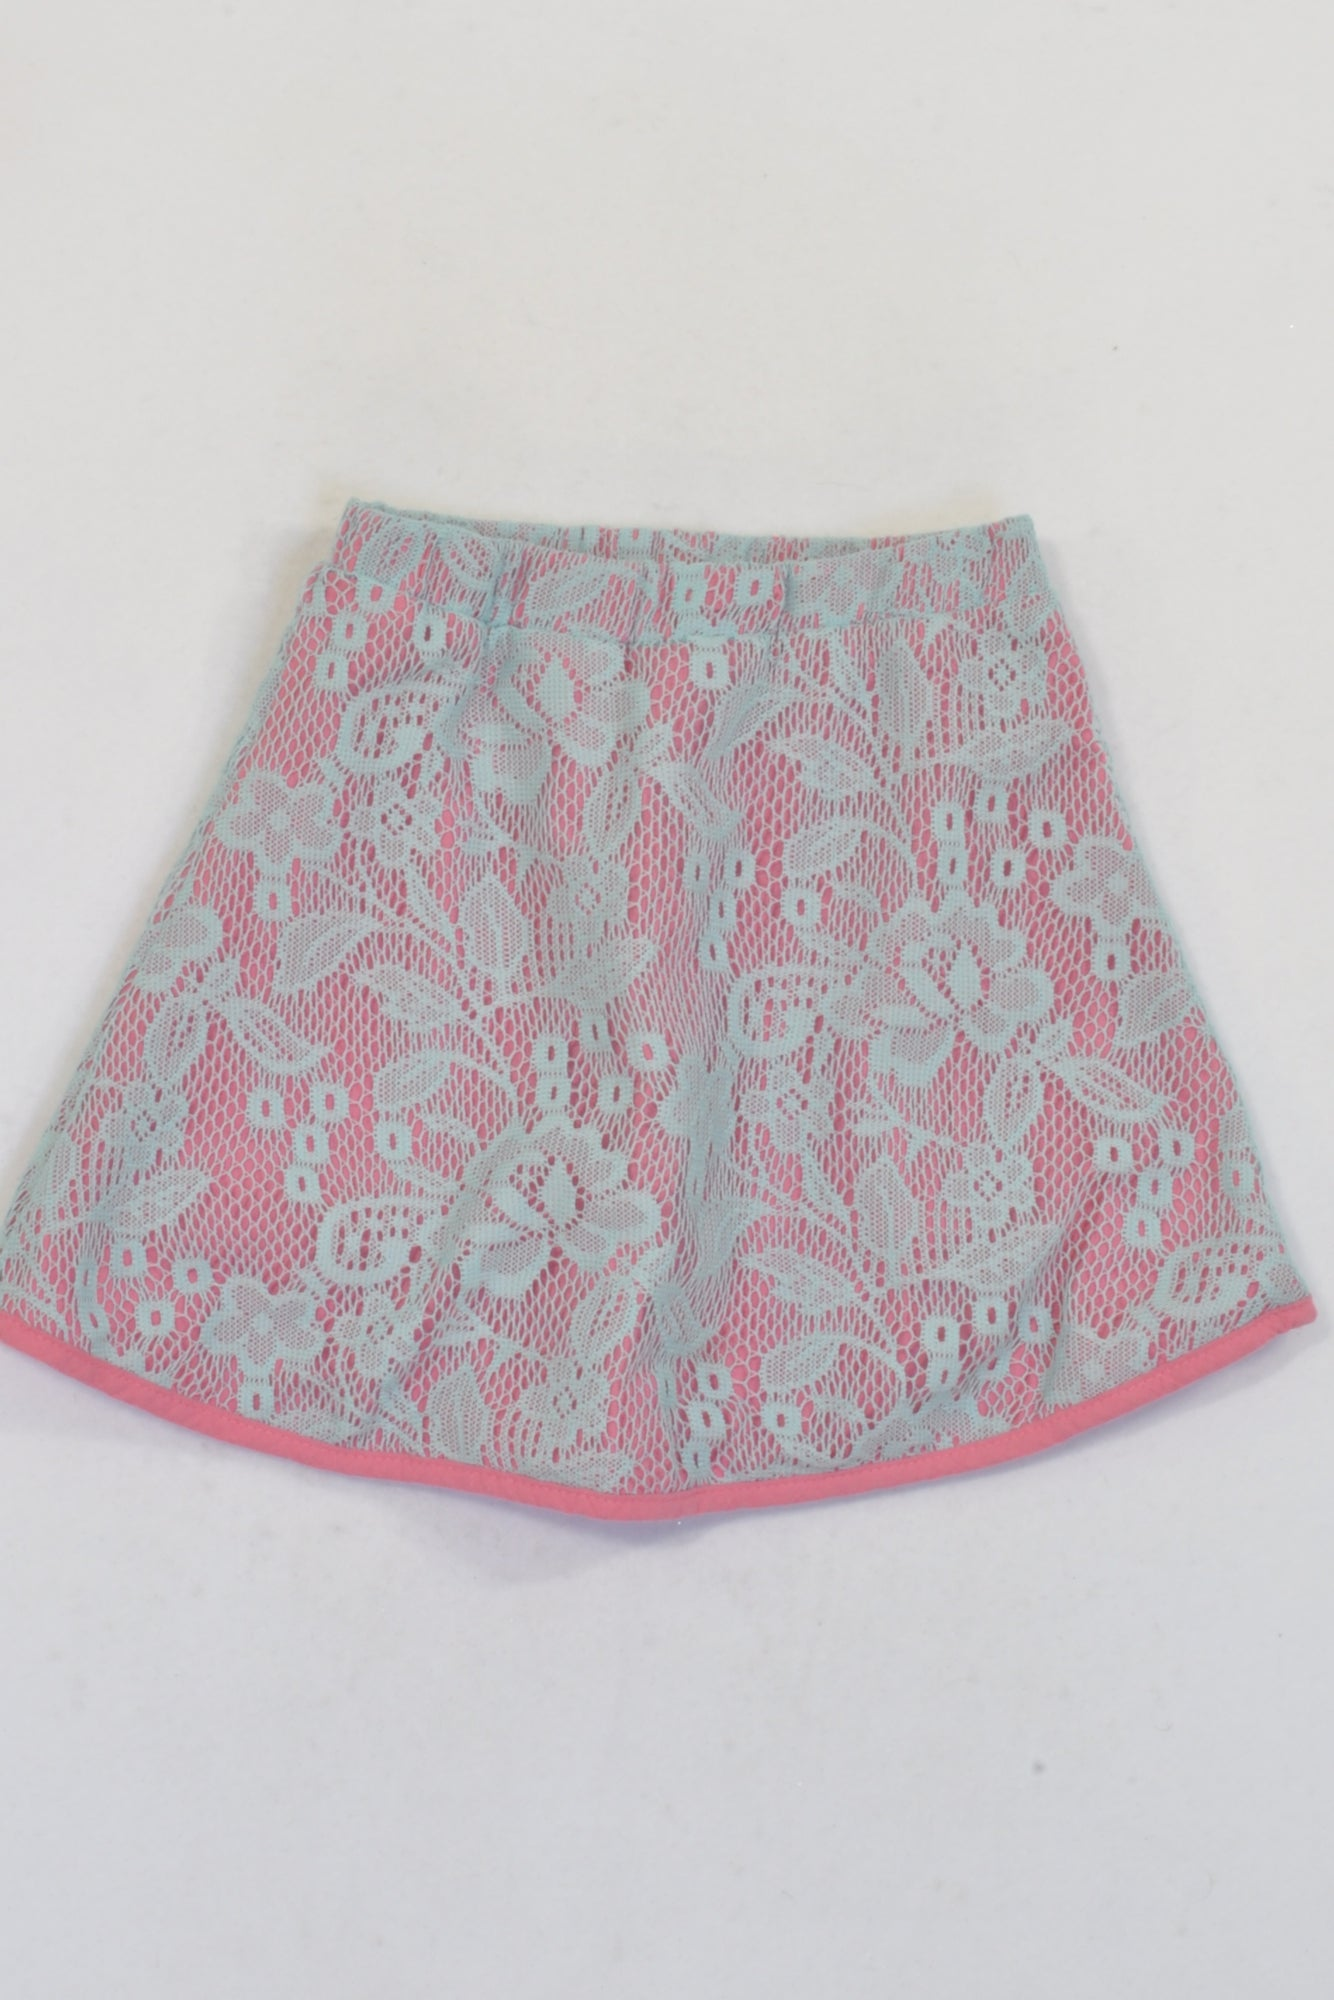 Babe Pink & Mint Lace Overlay Skirt Girls 4-5 years